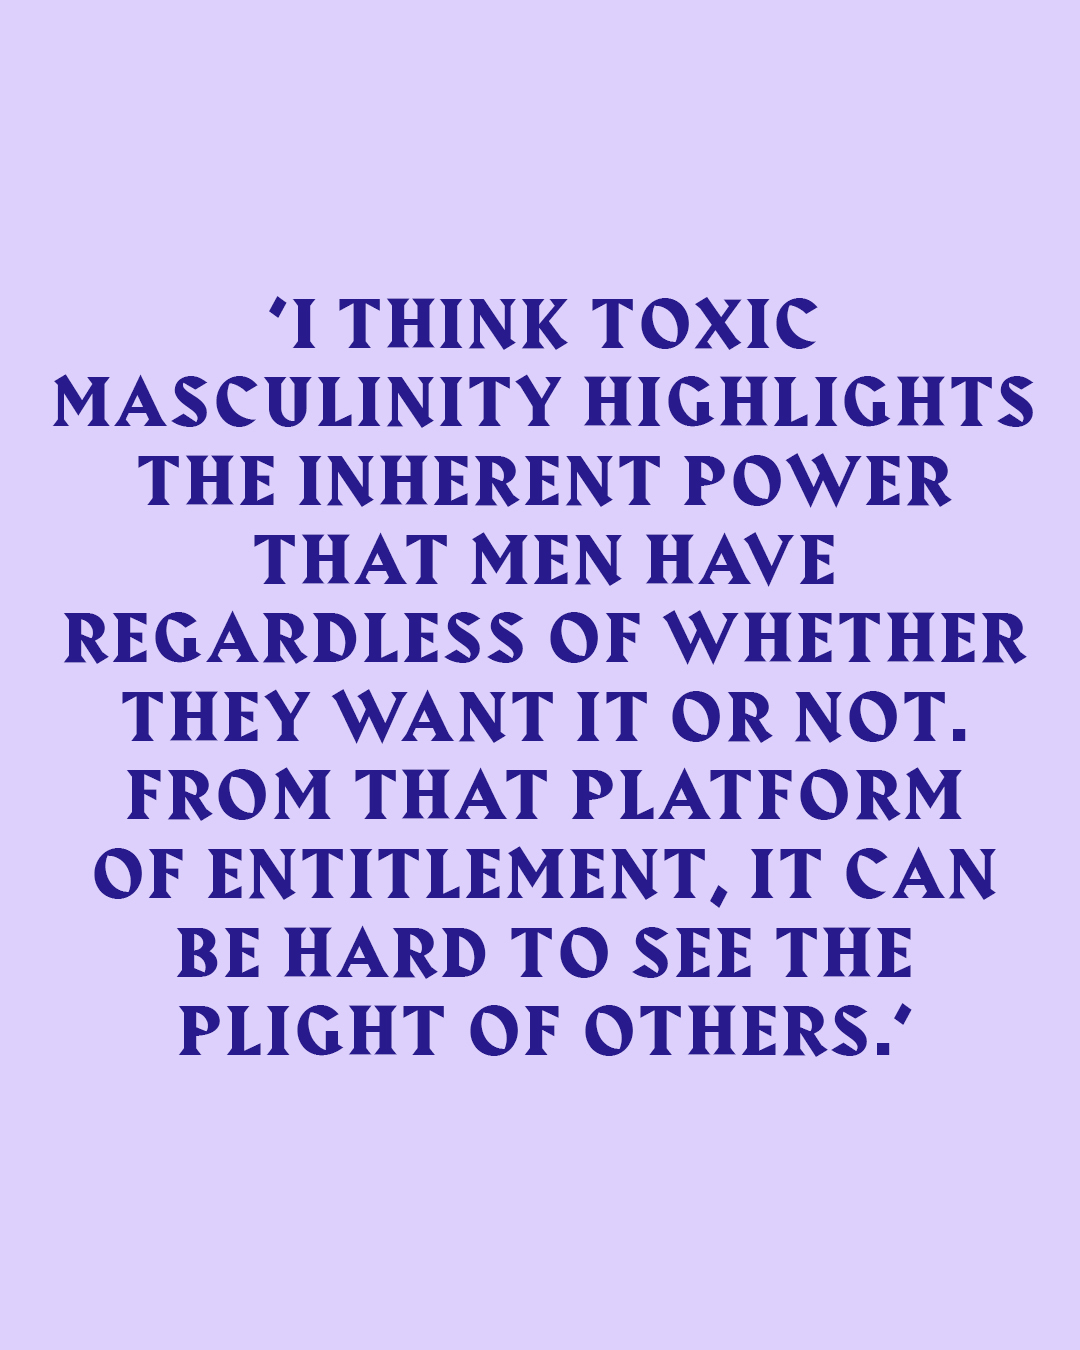 MWTB_GWSF_07.02.2019Quote 1 Purple.jpg